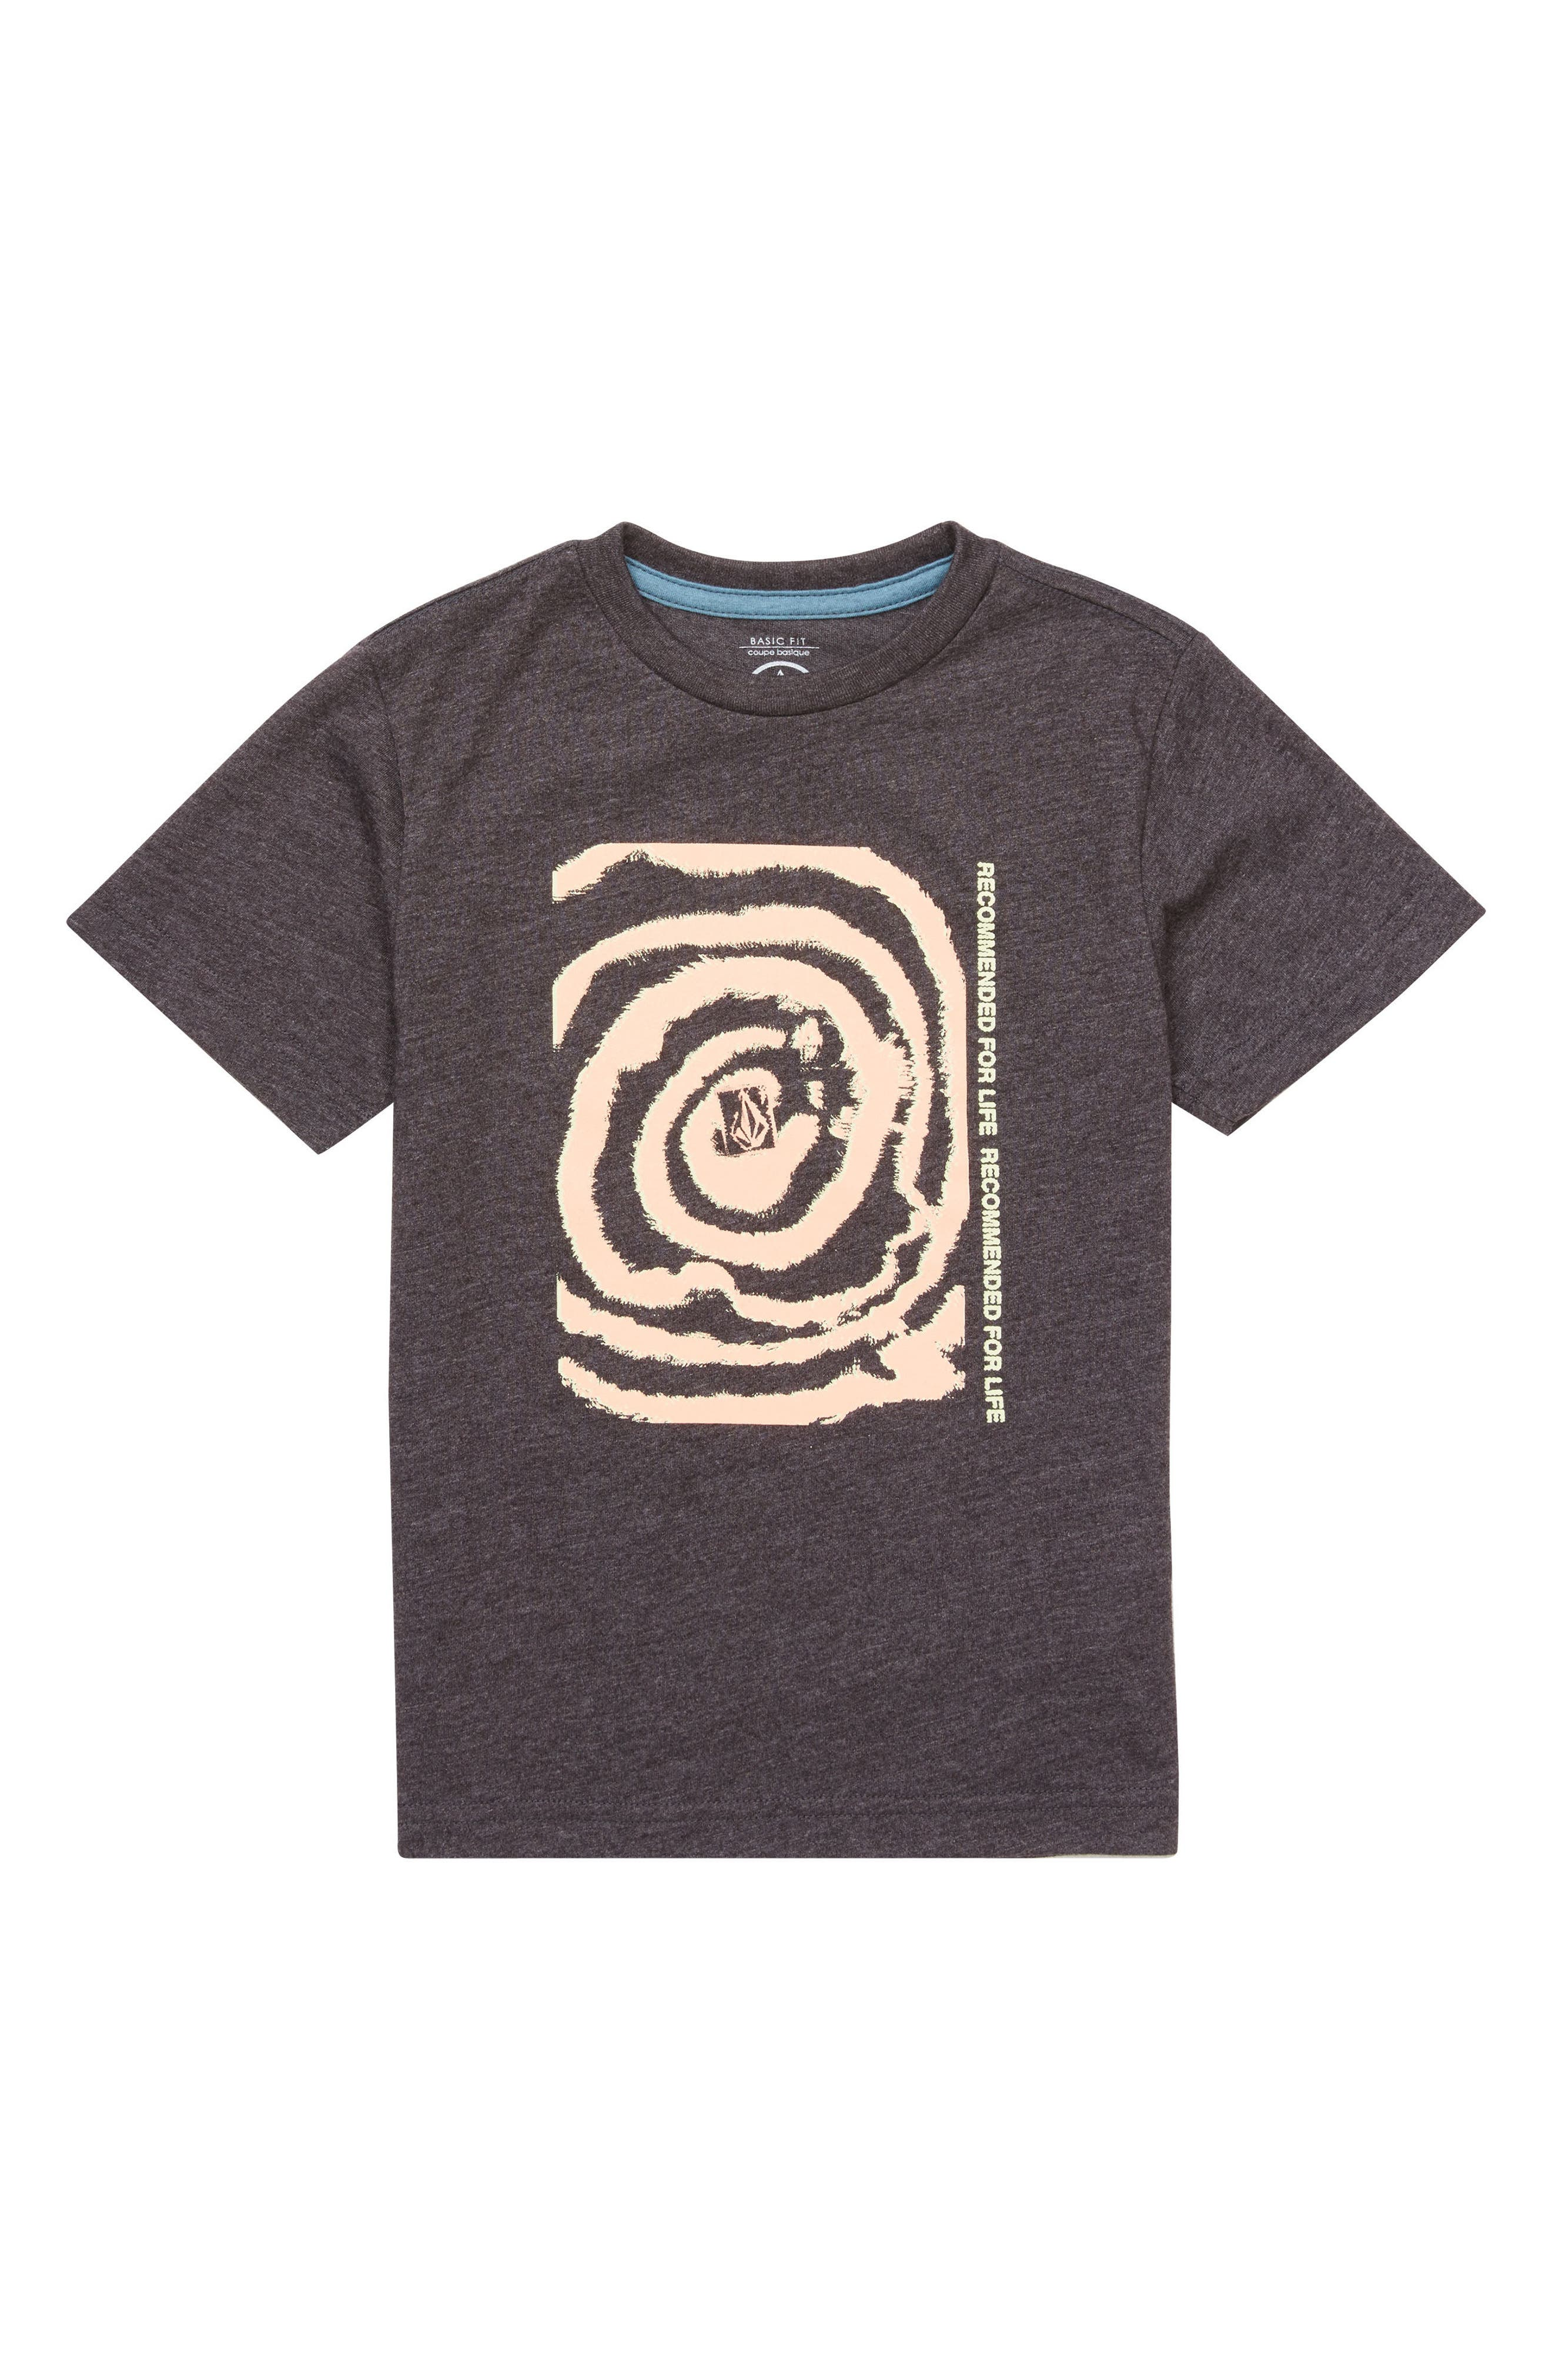 Maag Graphic T-Shirt,                         Main,                         color,